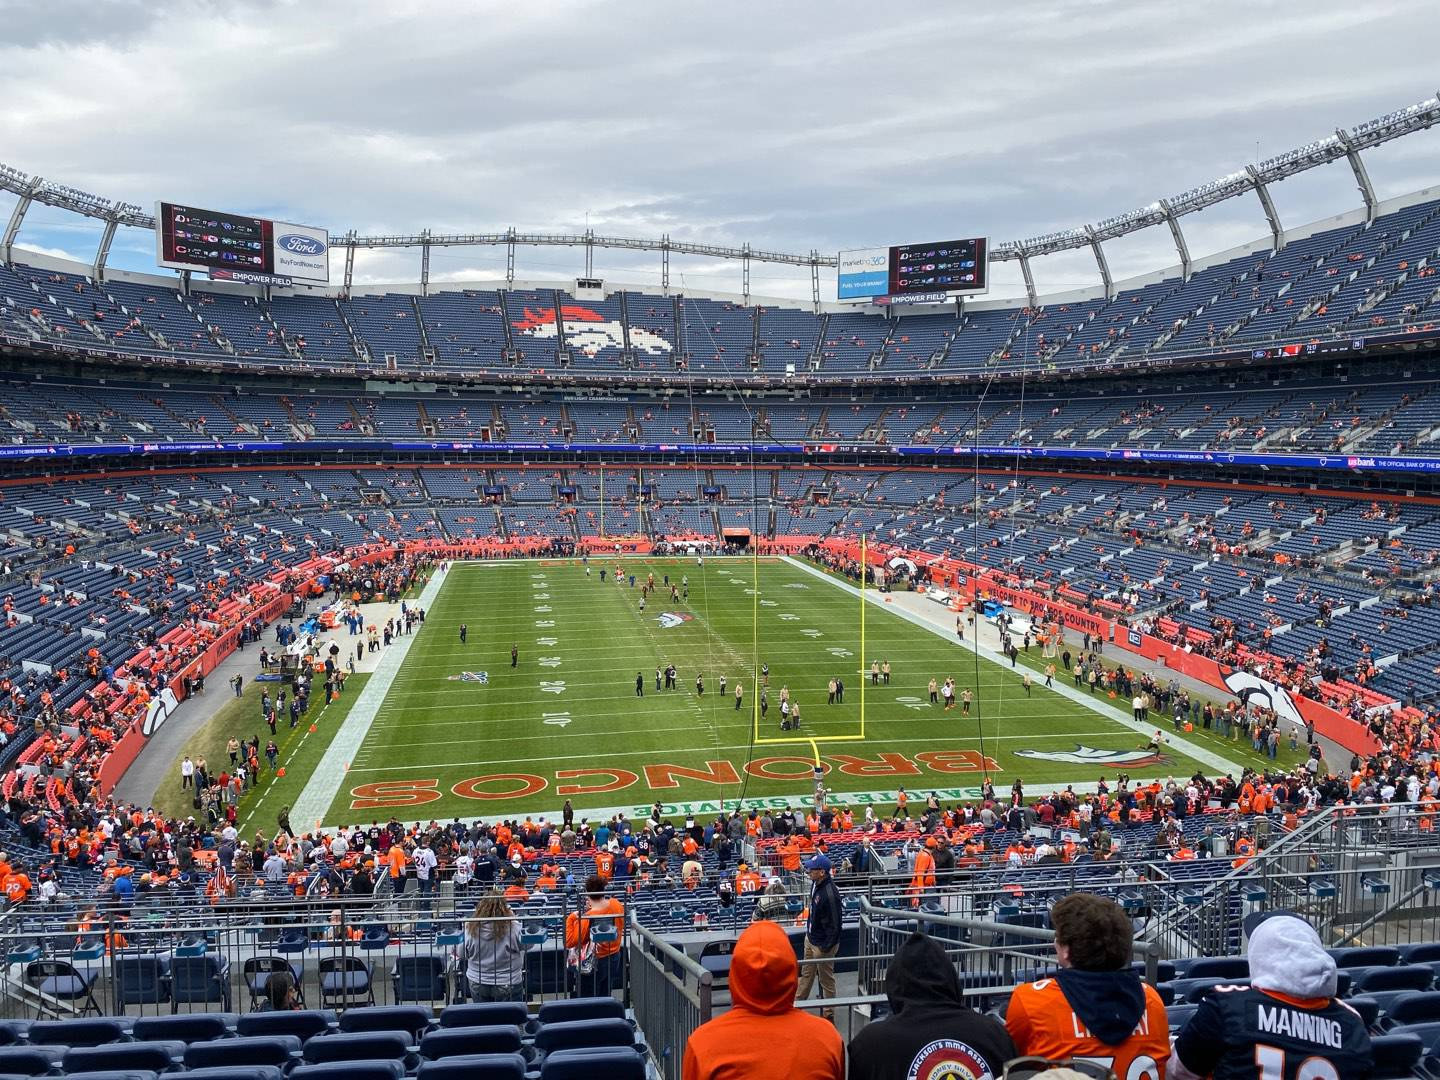 Empower Field at Mile High Stadium Section 233 Row 14 Seat 14